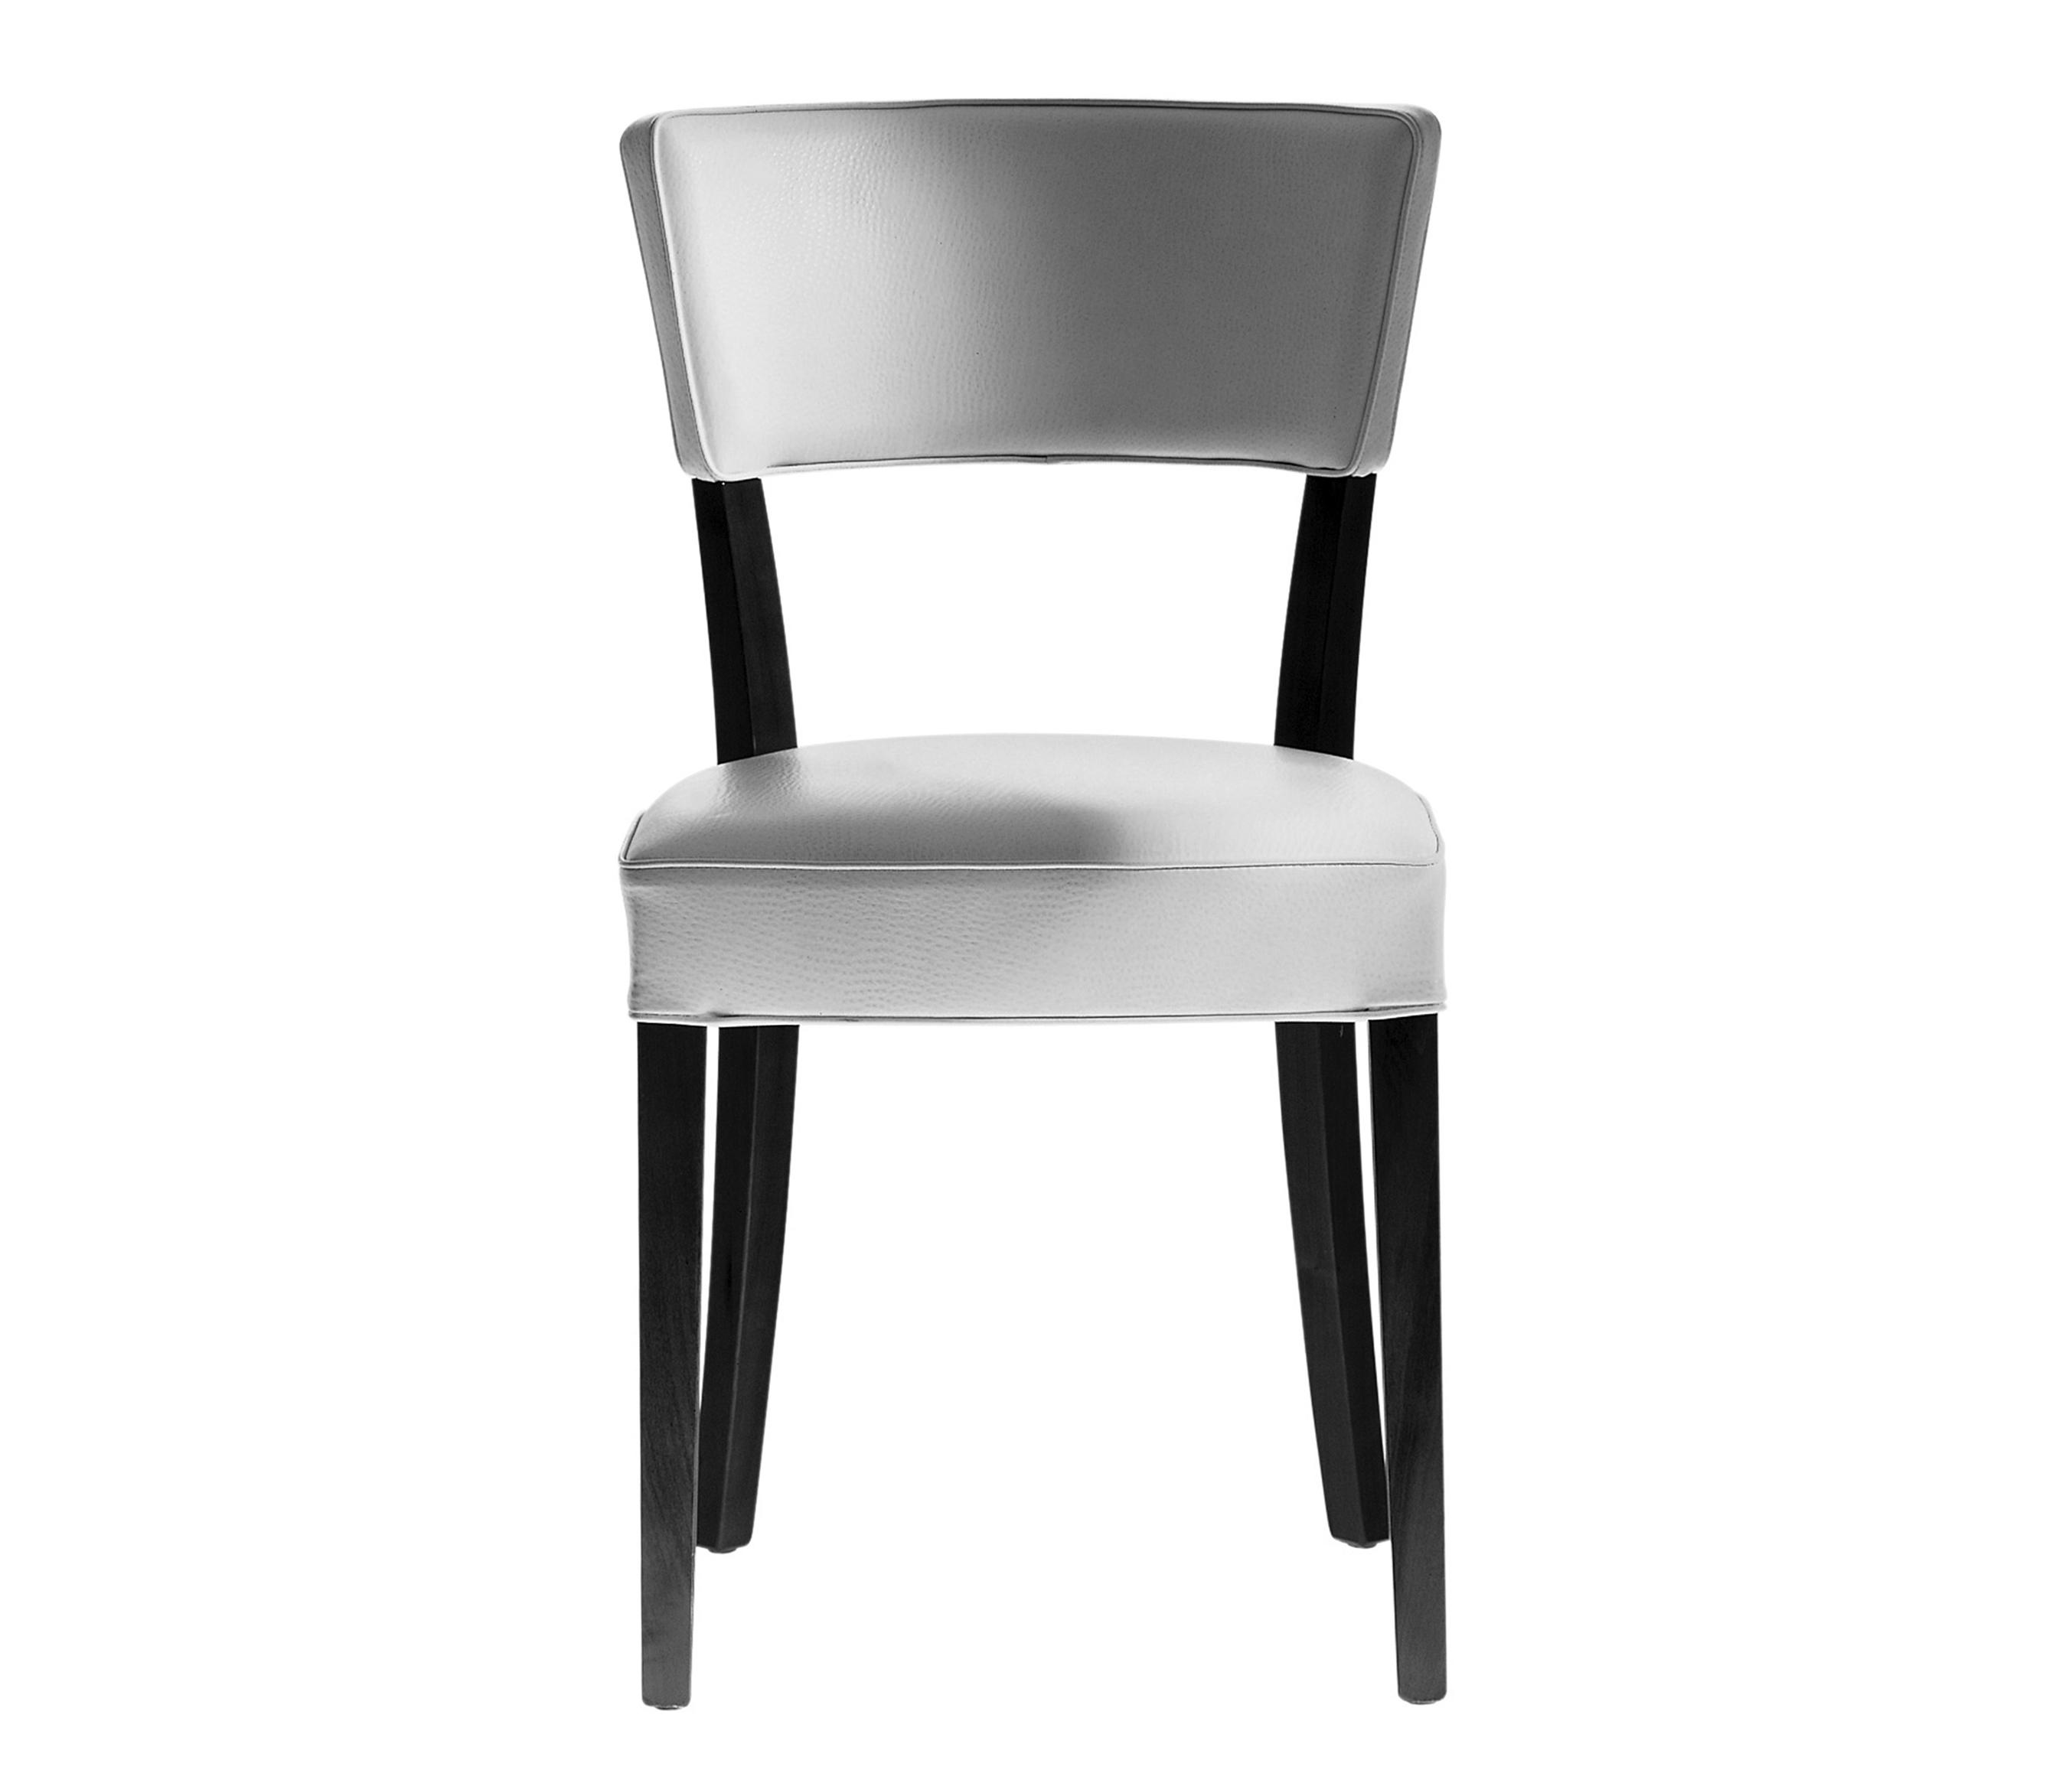 NEOZ CHAIR - Visitors chairs / Side chairs from Driade | Architonic